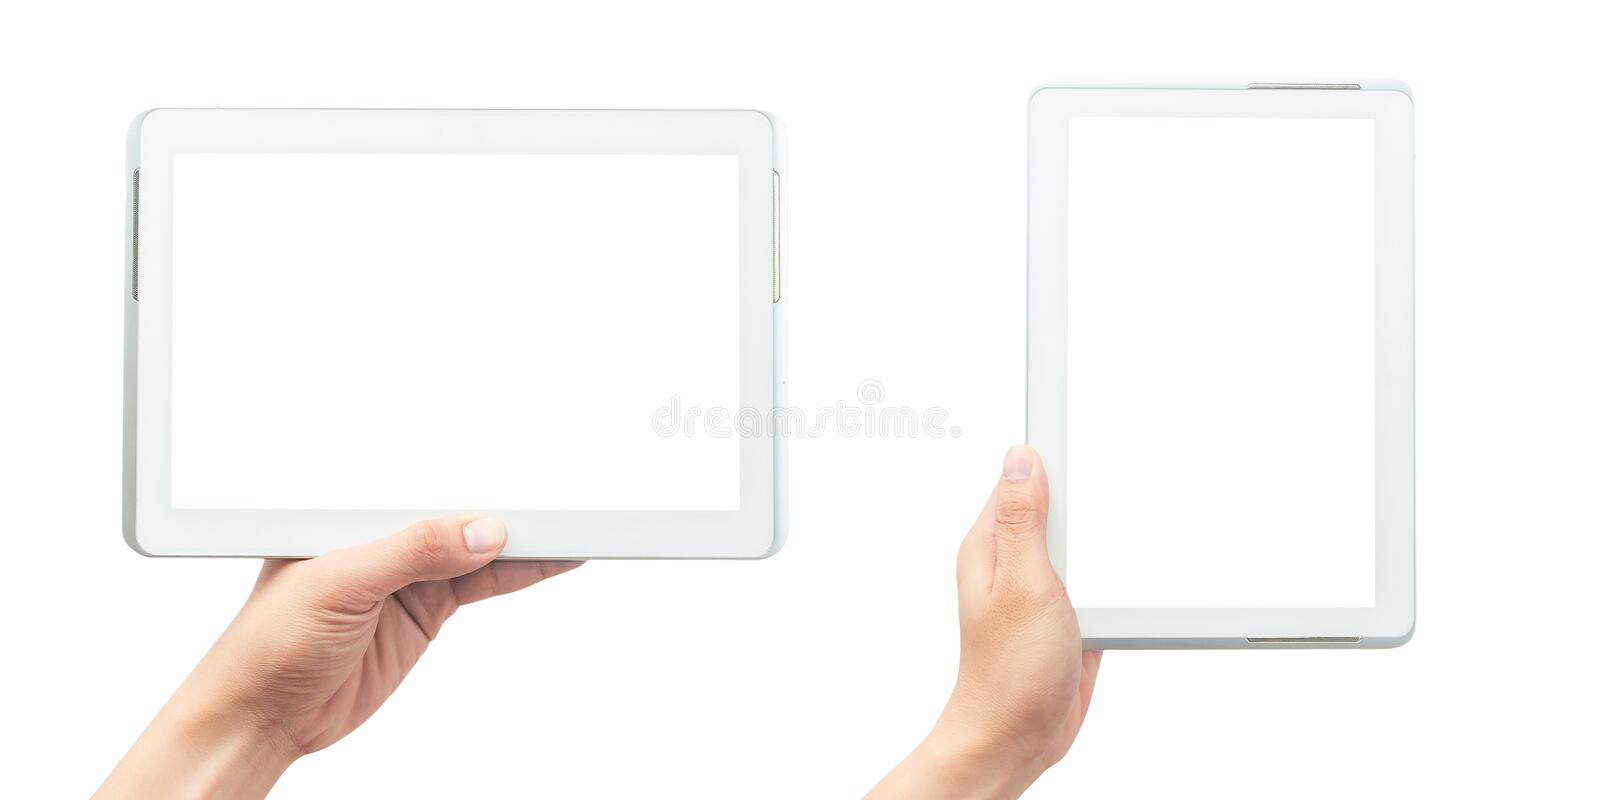 Male hand holding the white tablet pc computer with blank screen isolated on white background with clipping path. stock photos